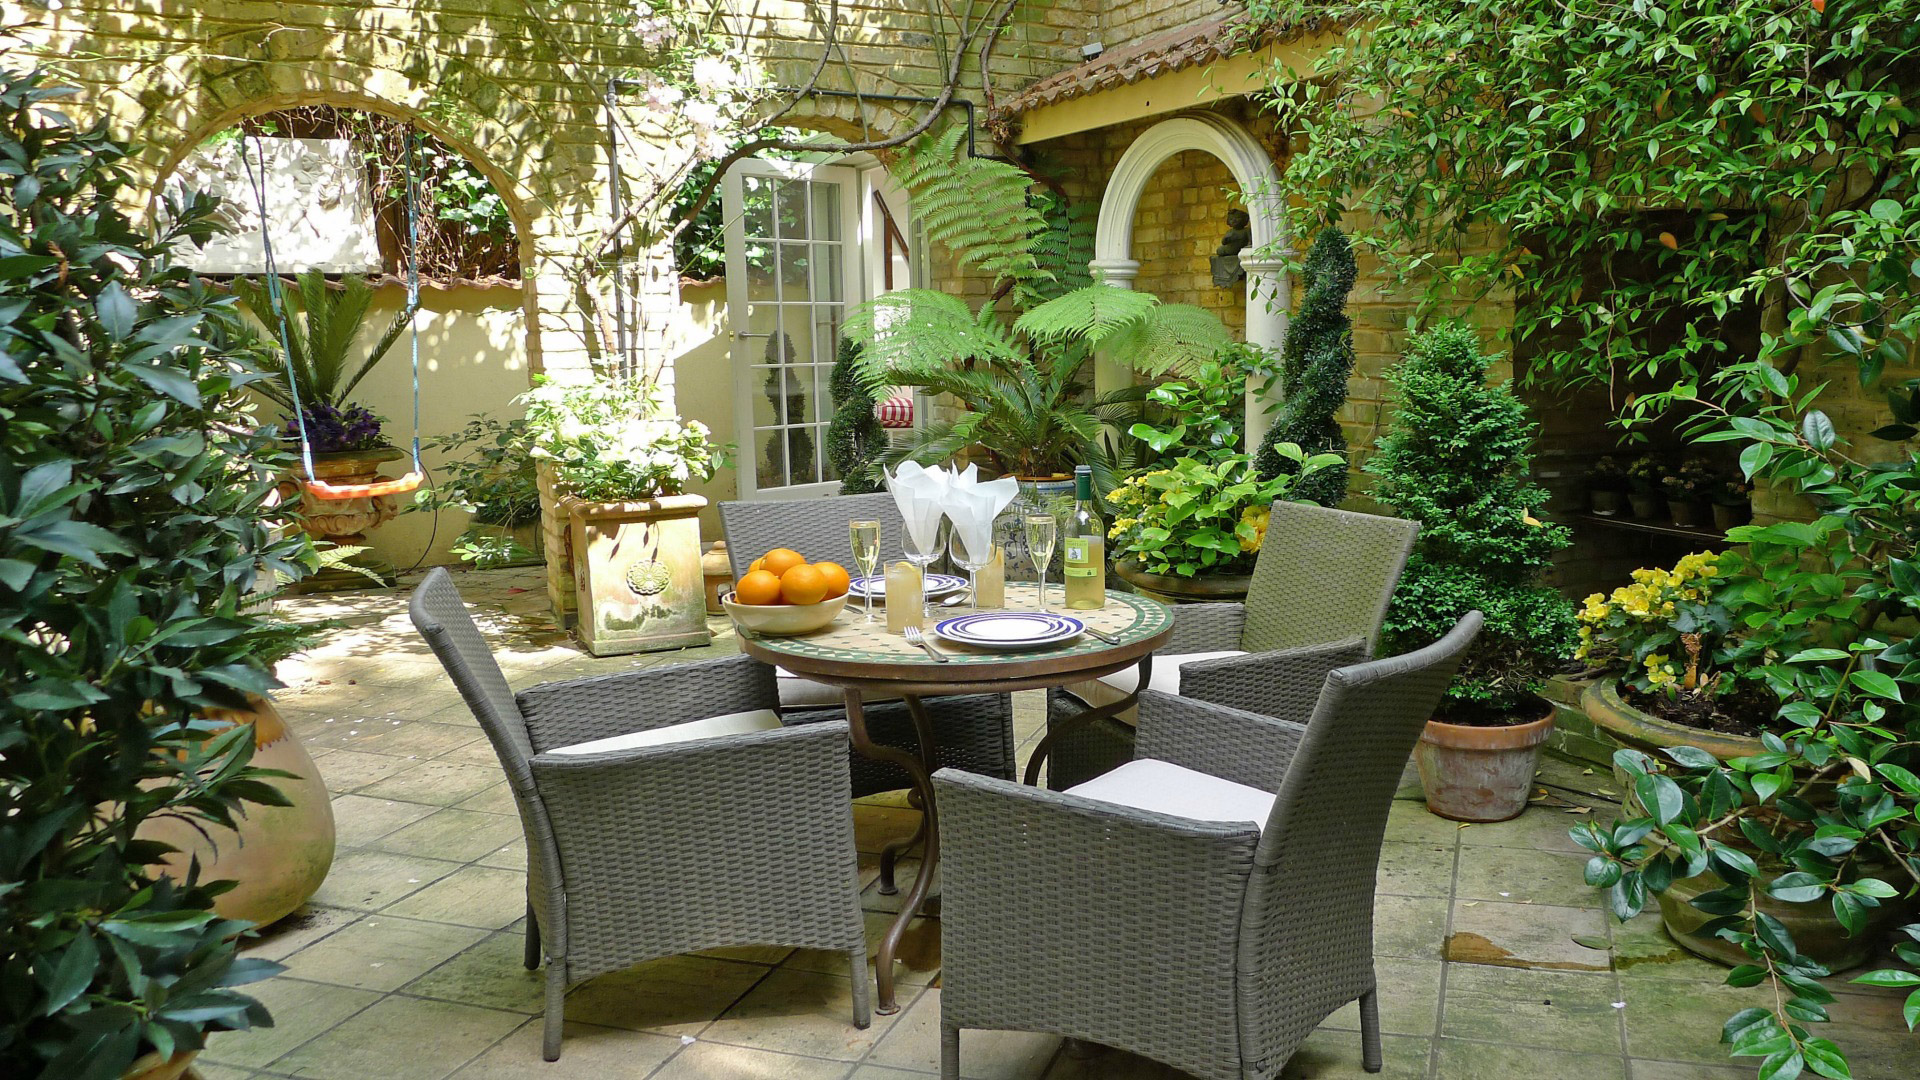 Kensington vacation apartment with patio garden Beautiful garden patio designs